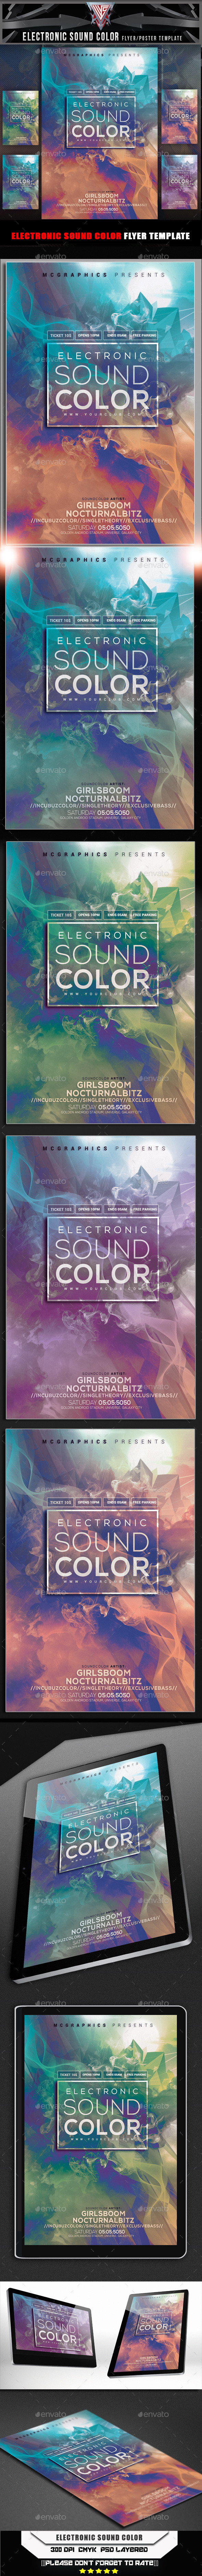 GraphicRiver Electronic Sound Color Flyer Template 10708247